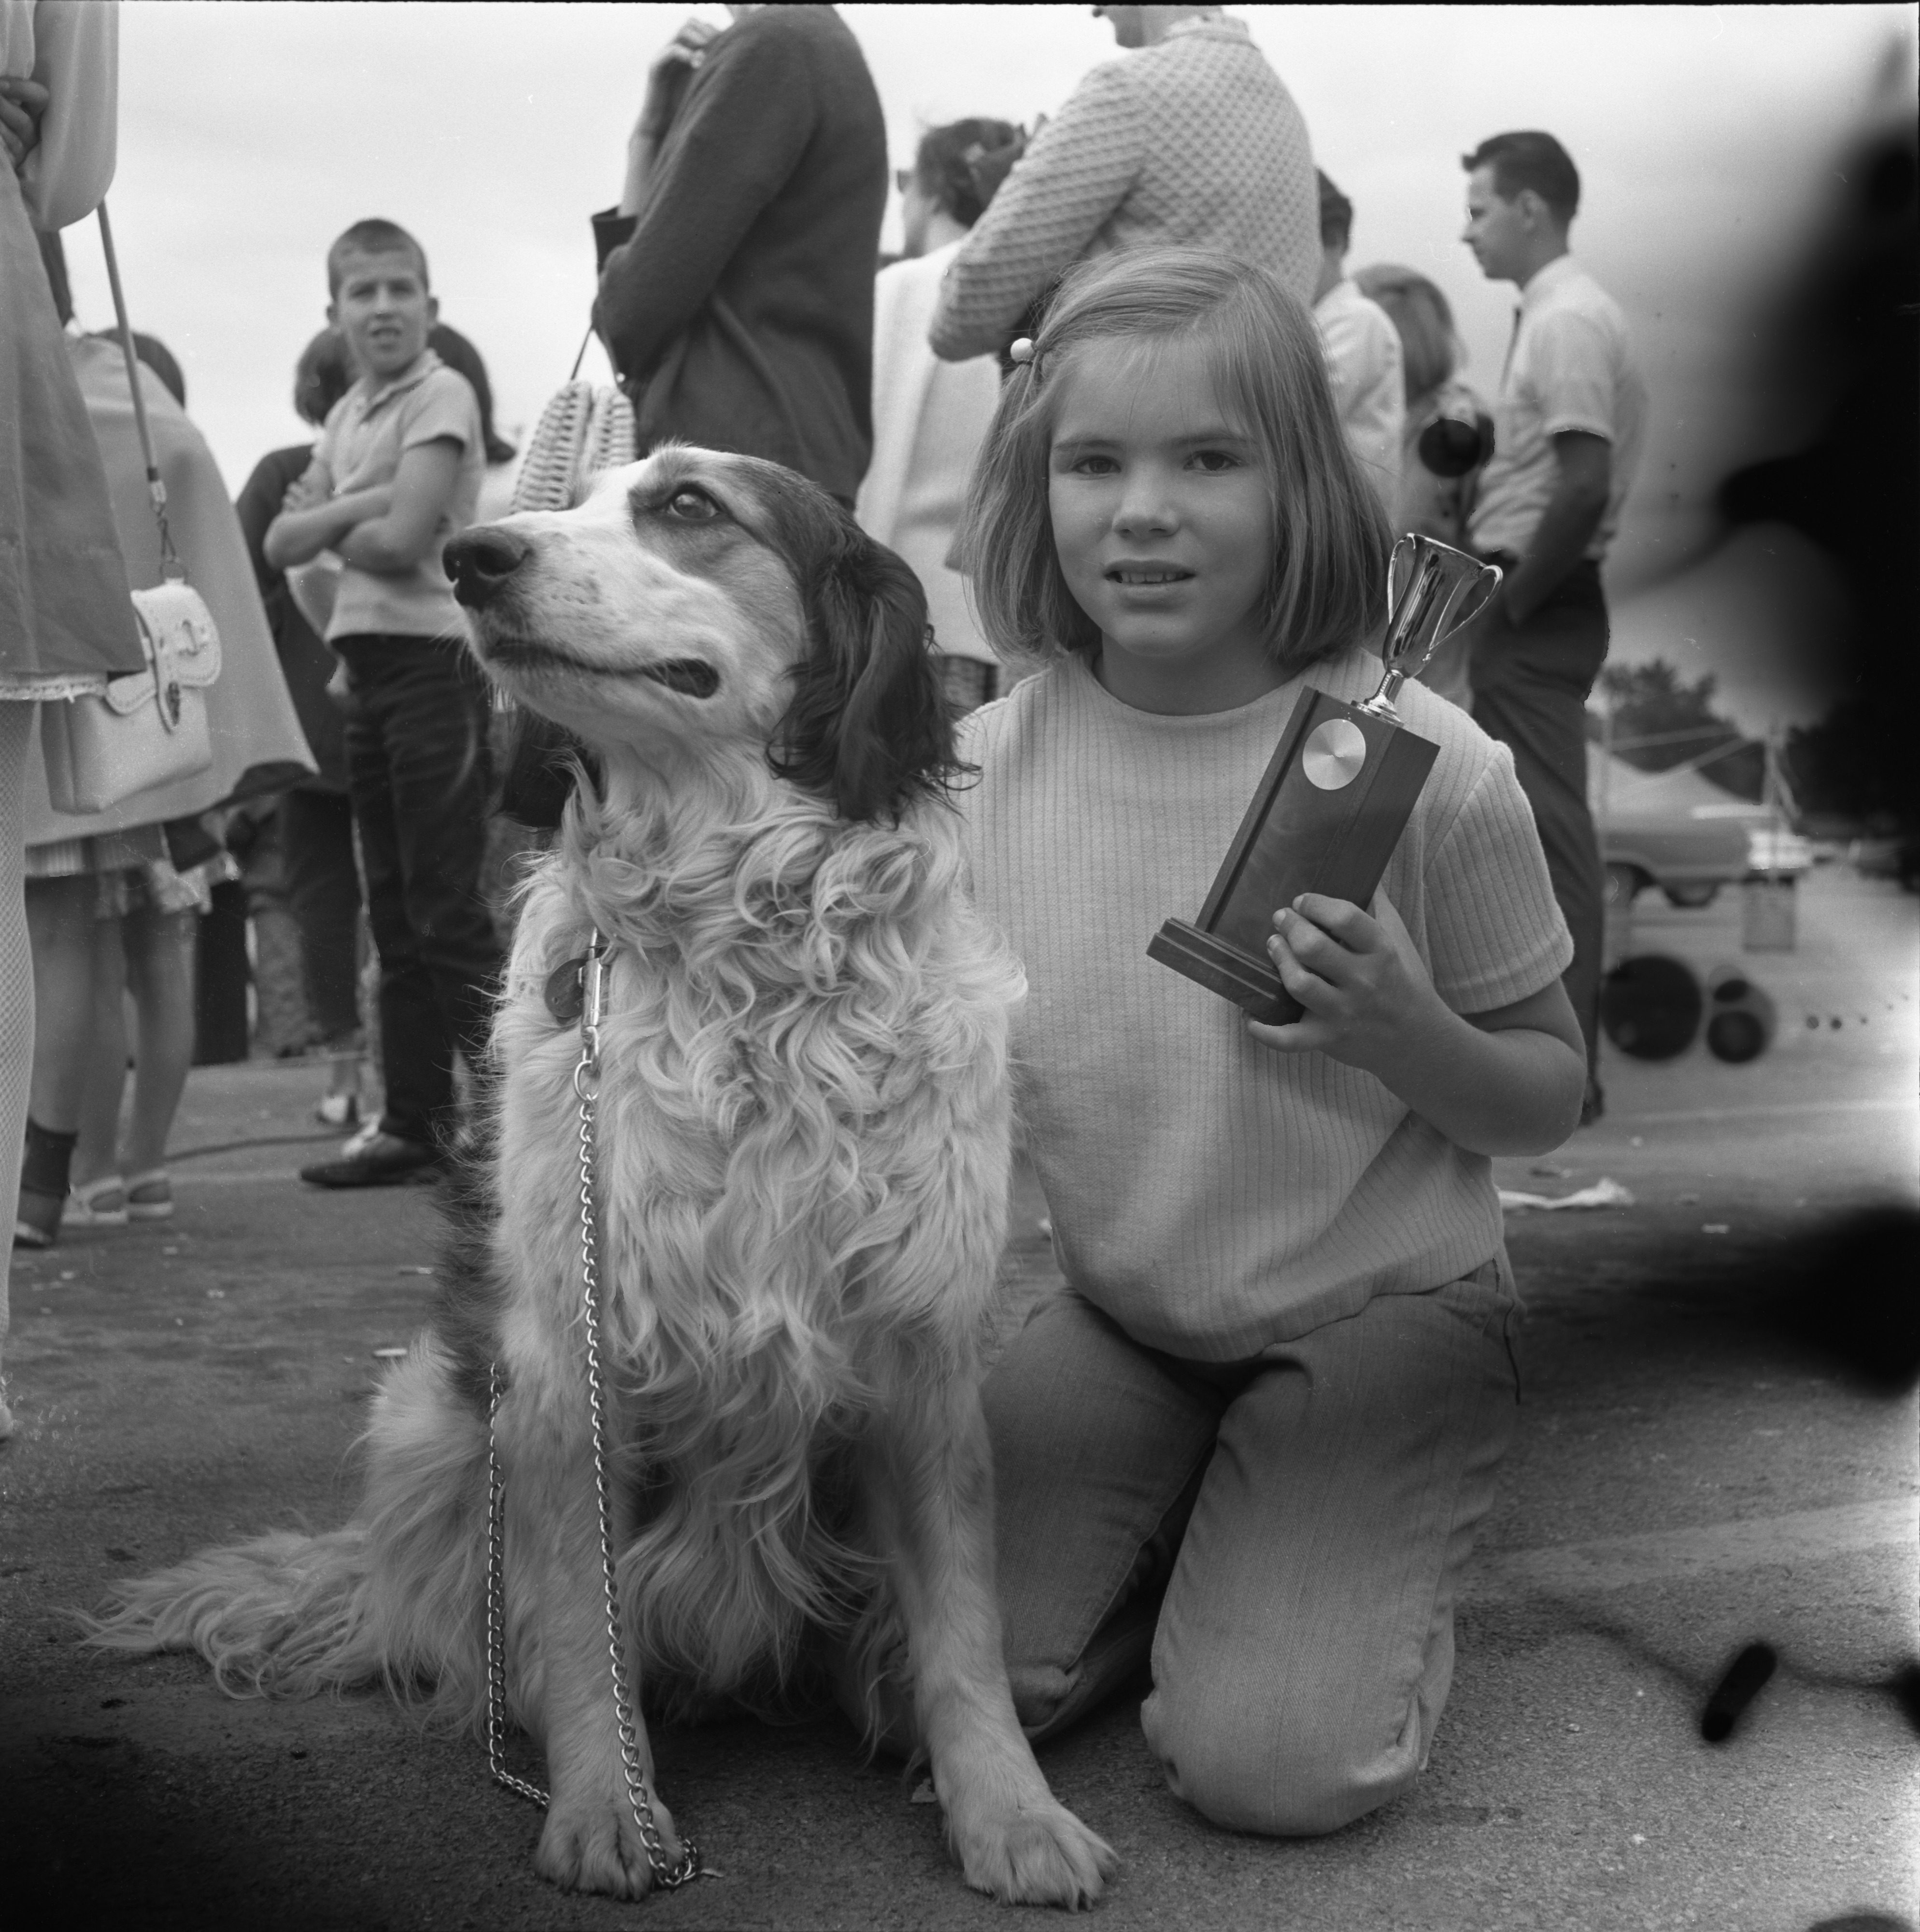 Wendy Walters & Her Dog, Duchess, Winners At Westgate Shopping Center's Pet Circus, July 17, 1967 image